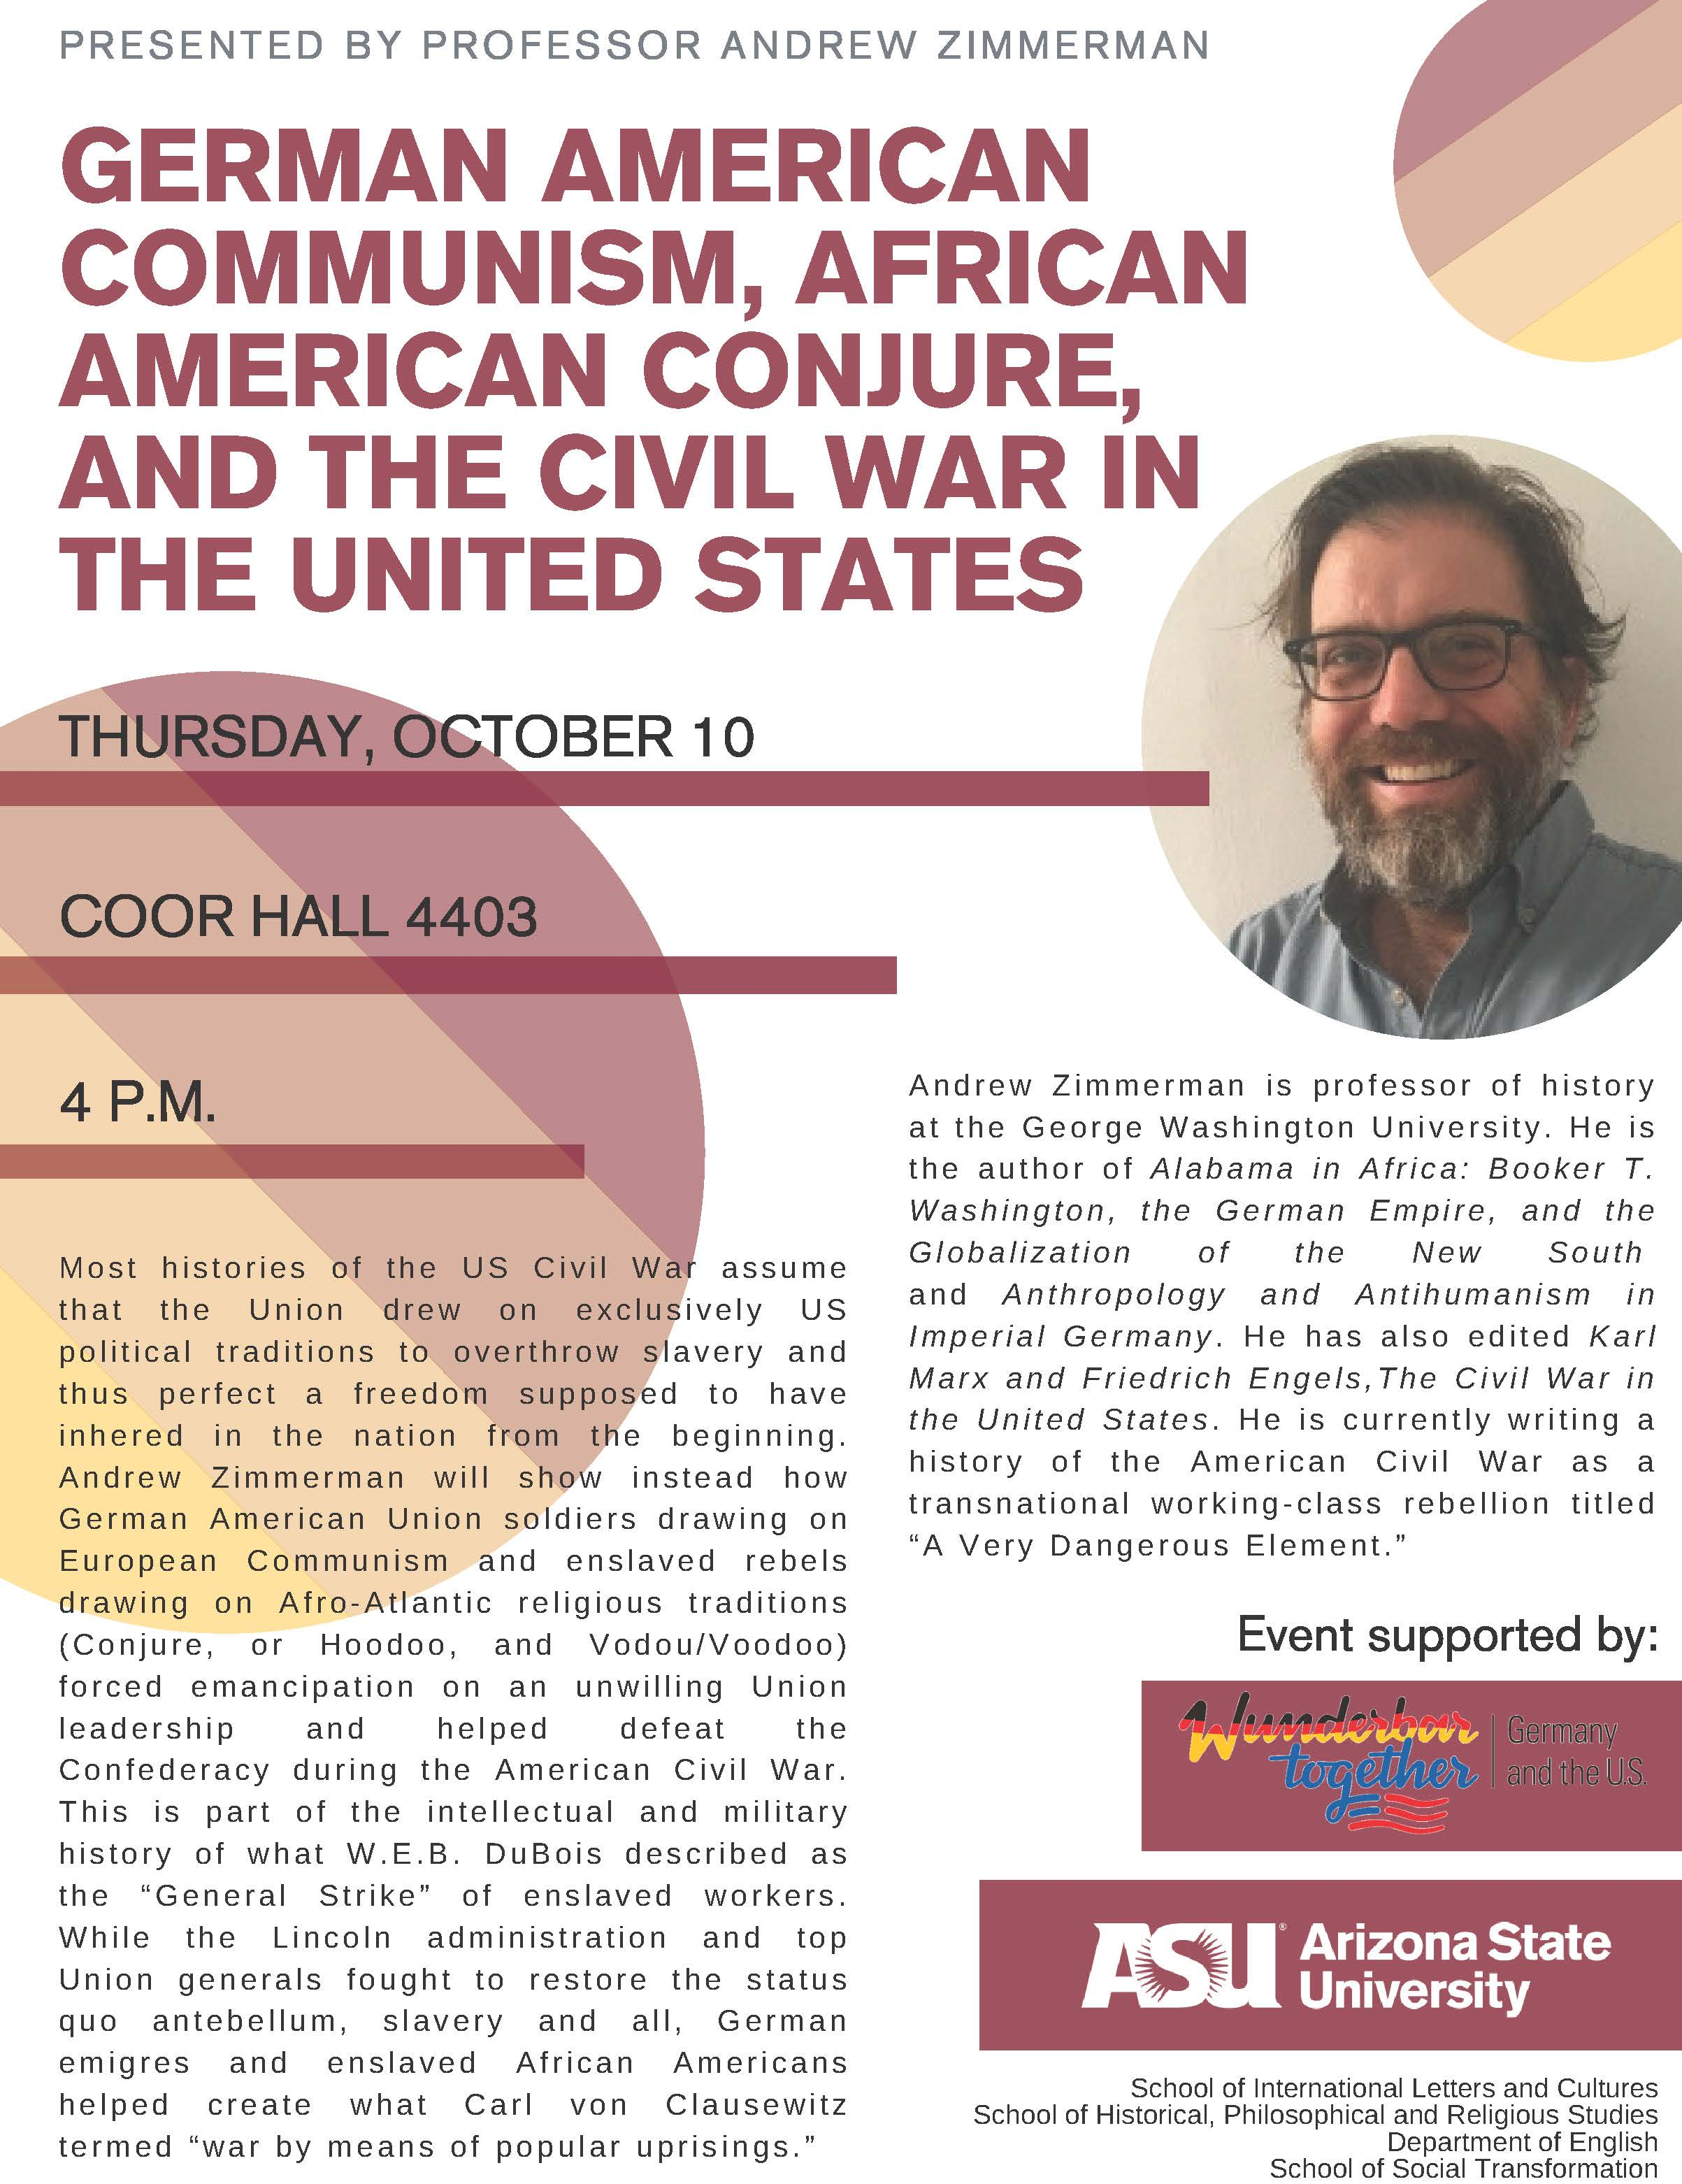 Flyer for 2019 lecture at ASU by Andrew Zimmerman